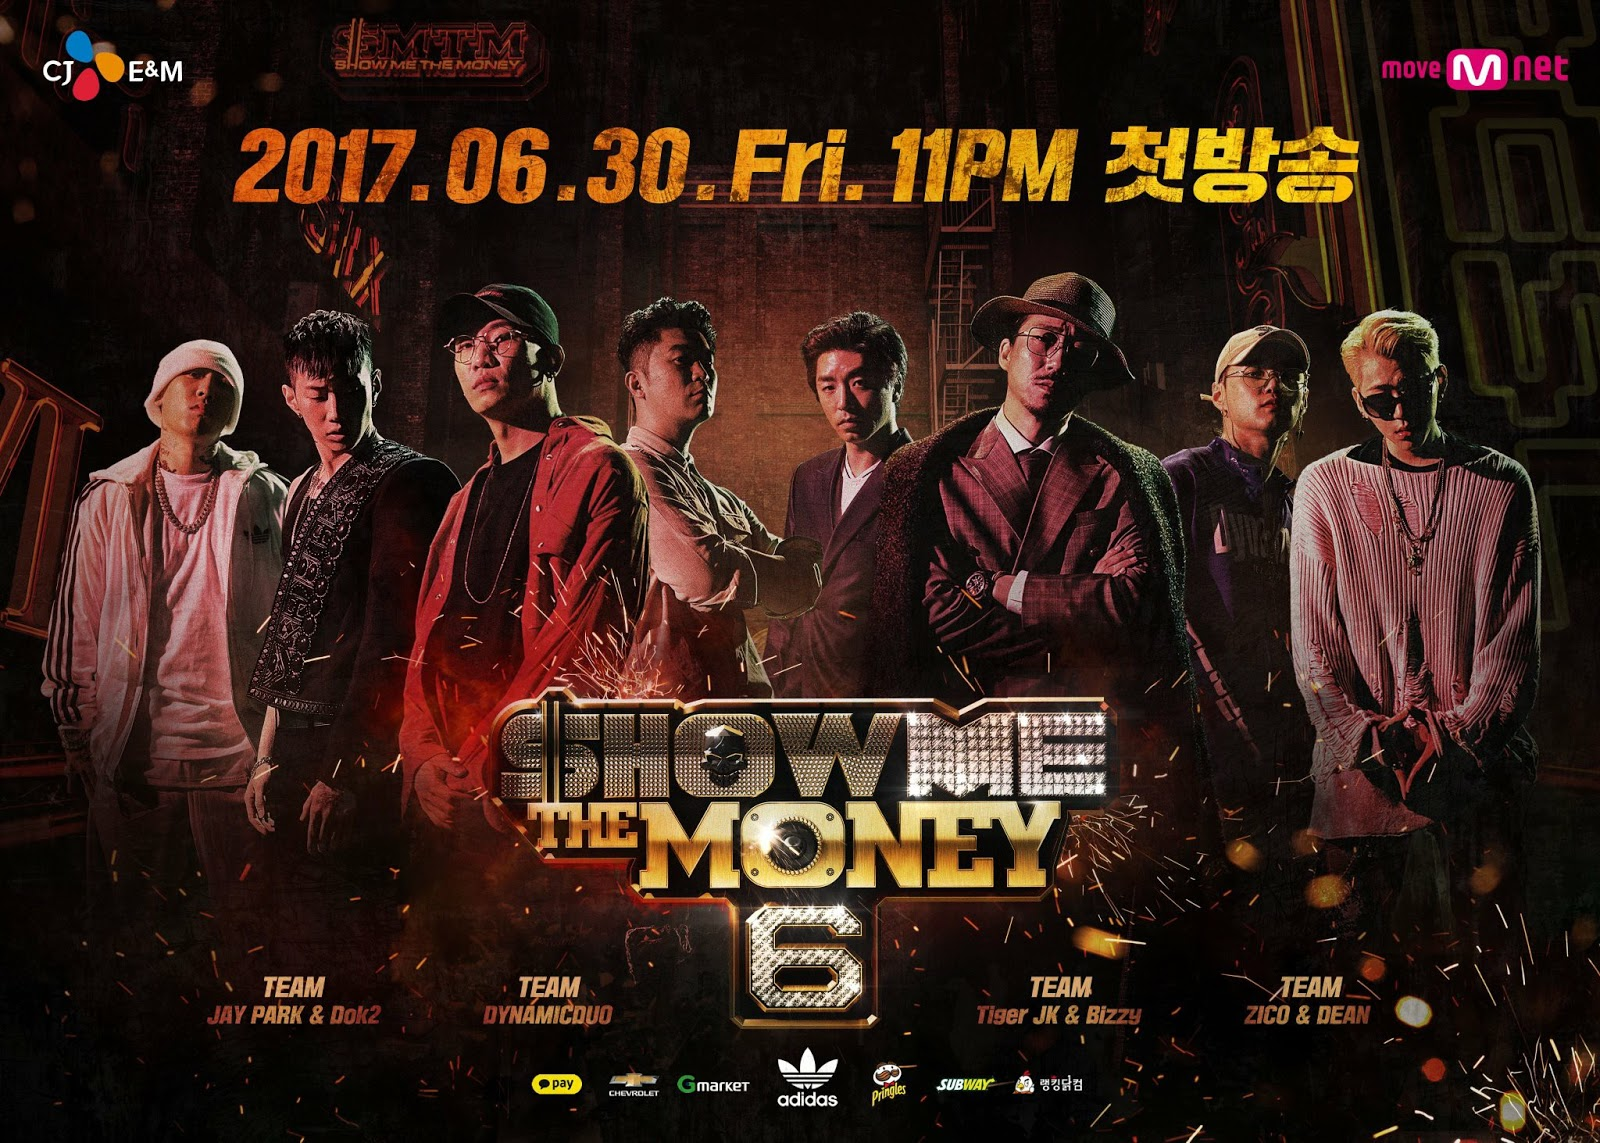 Show Me The Money 6 Episode 9 Engsub - Viral Cool